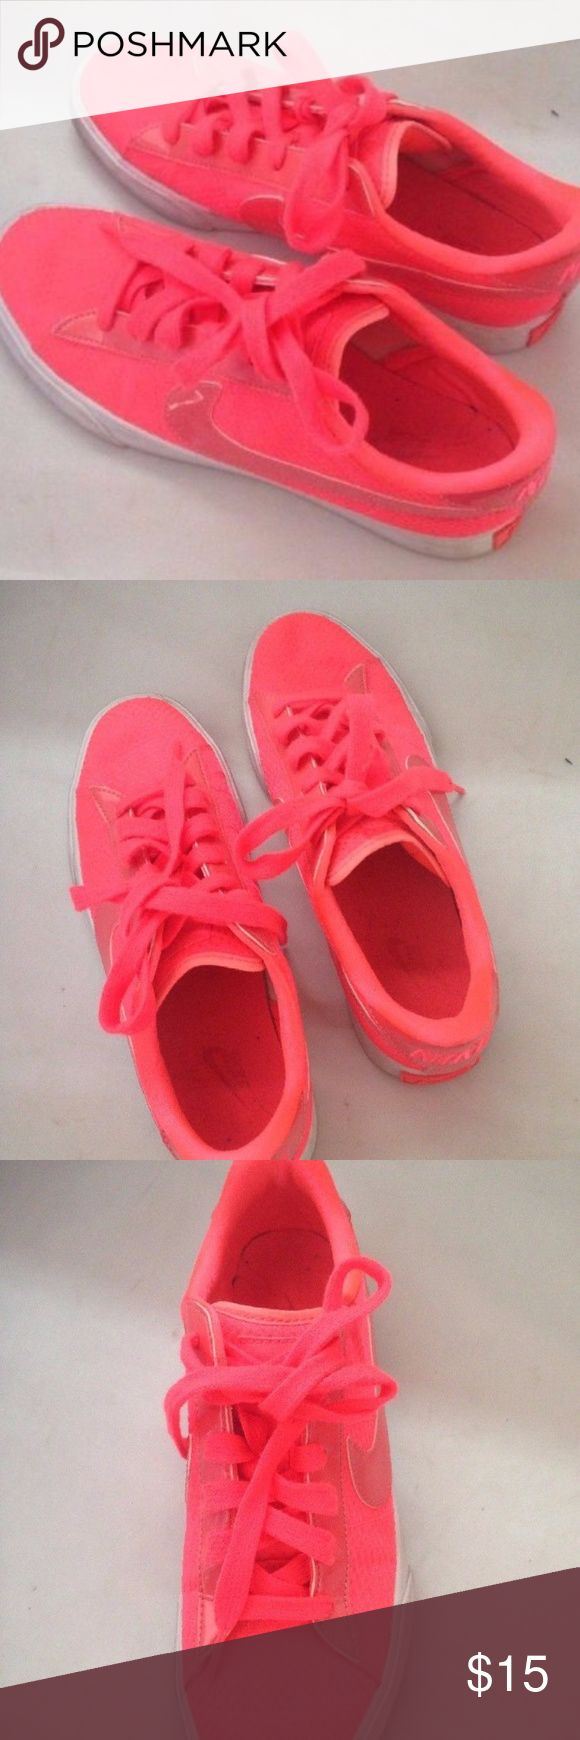 Nike Primo Court Sneakers Tennis Shoes  Hot Pink Nike Primo Court Sneakers Tennis Shoes Canvas Hot Pink Swoosh Nike Shoes Athletic Shoes